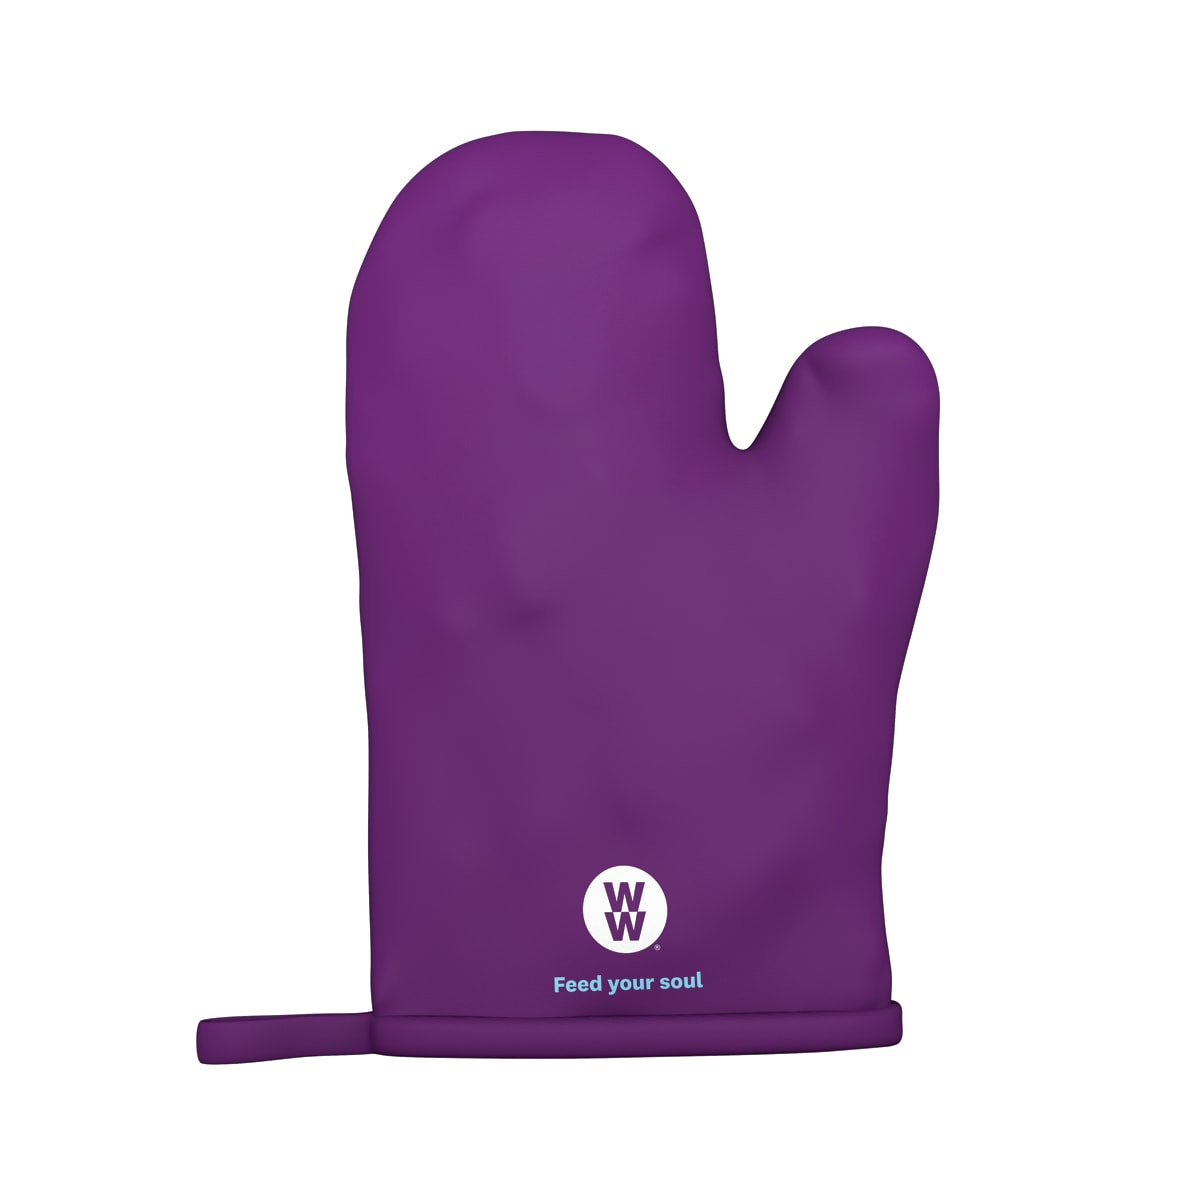 WW Oven Mitt, safeguard your hands, must-have kitchen accessory, 1 oven mitt, colour purple